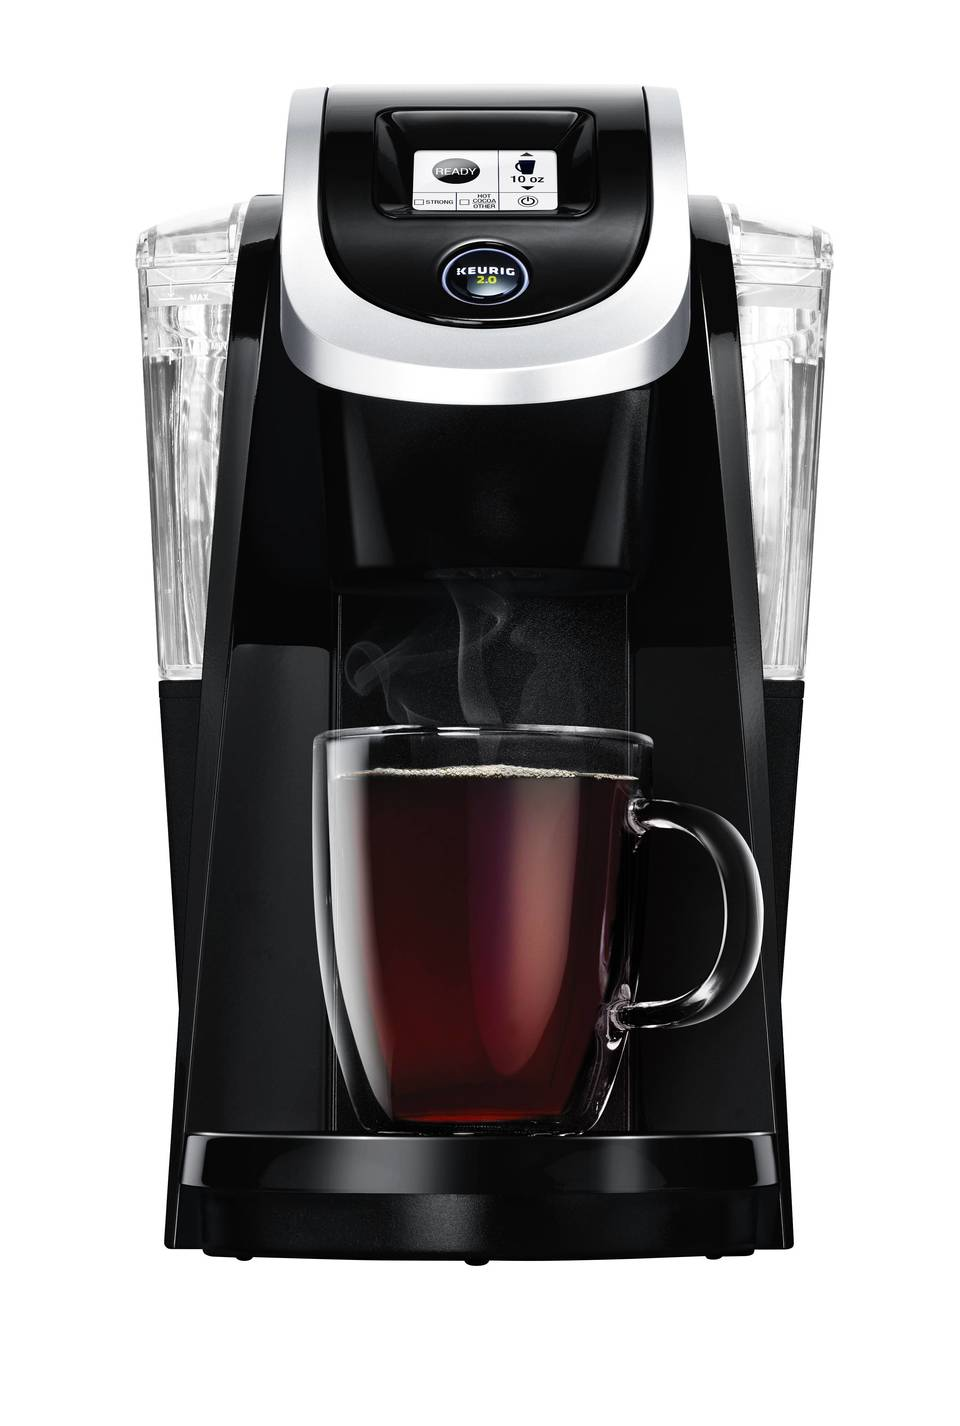 keurig k250 coffee maker - Keurig Coffee Maker Reviews